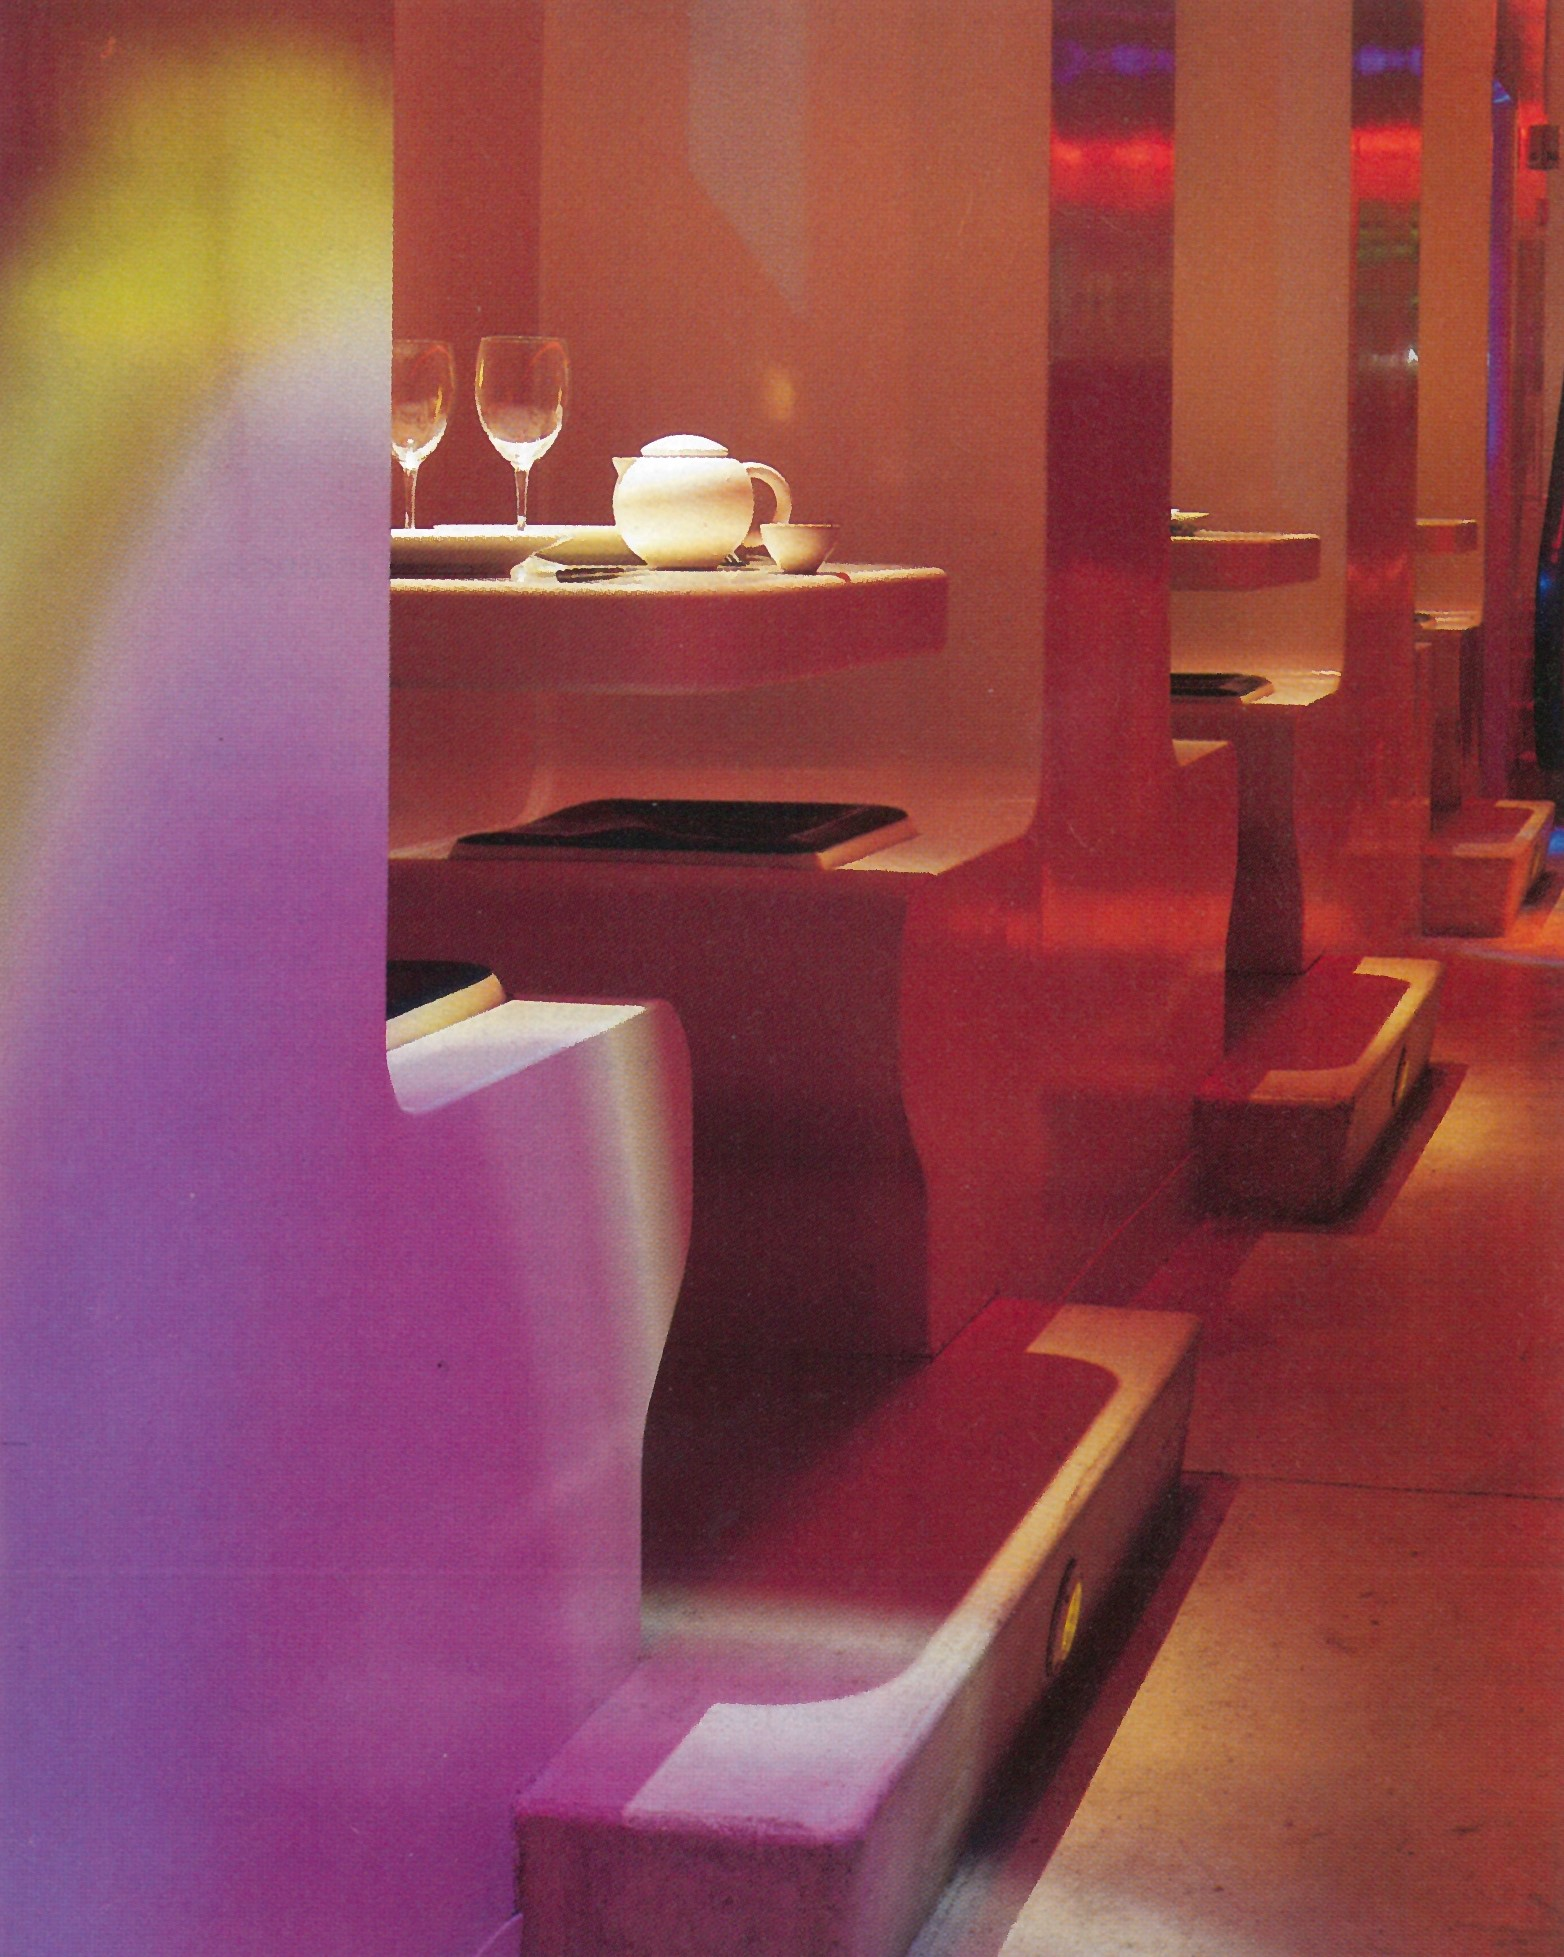 Elevated booths - Tables cantilevered to wall with gel cushions for comfortable seating